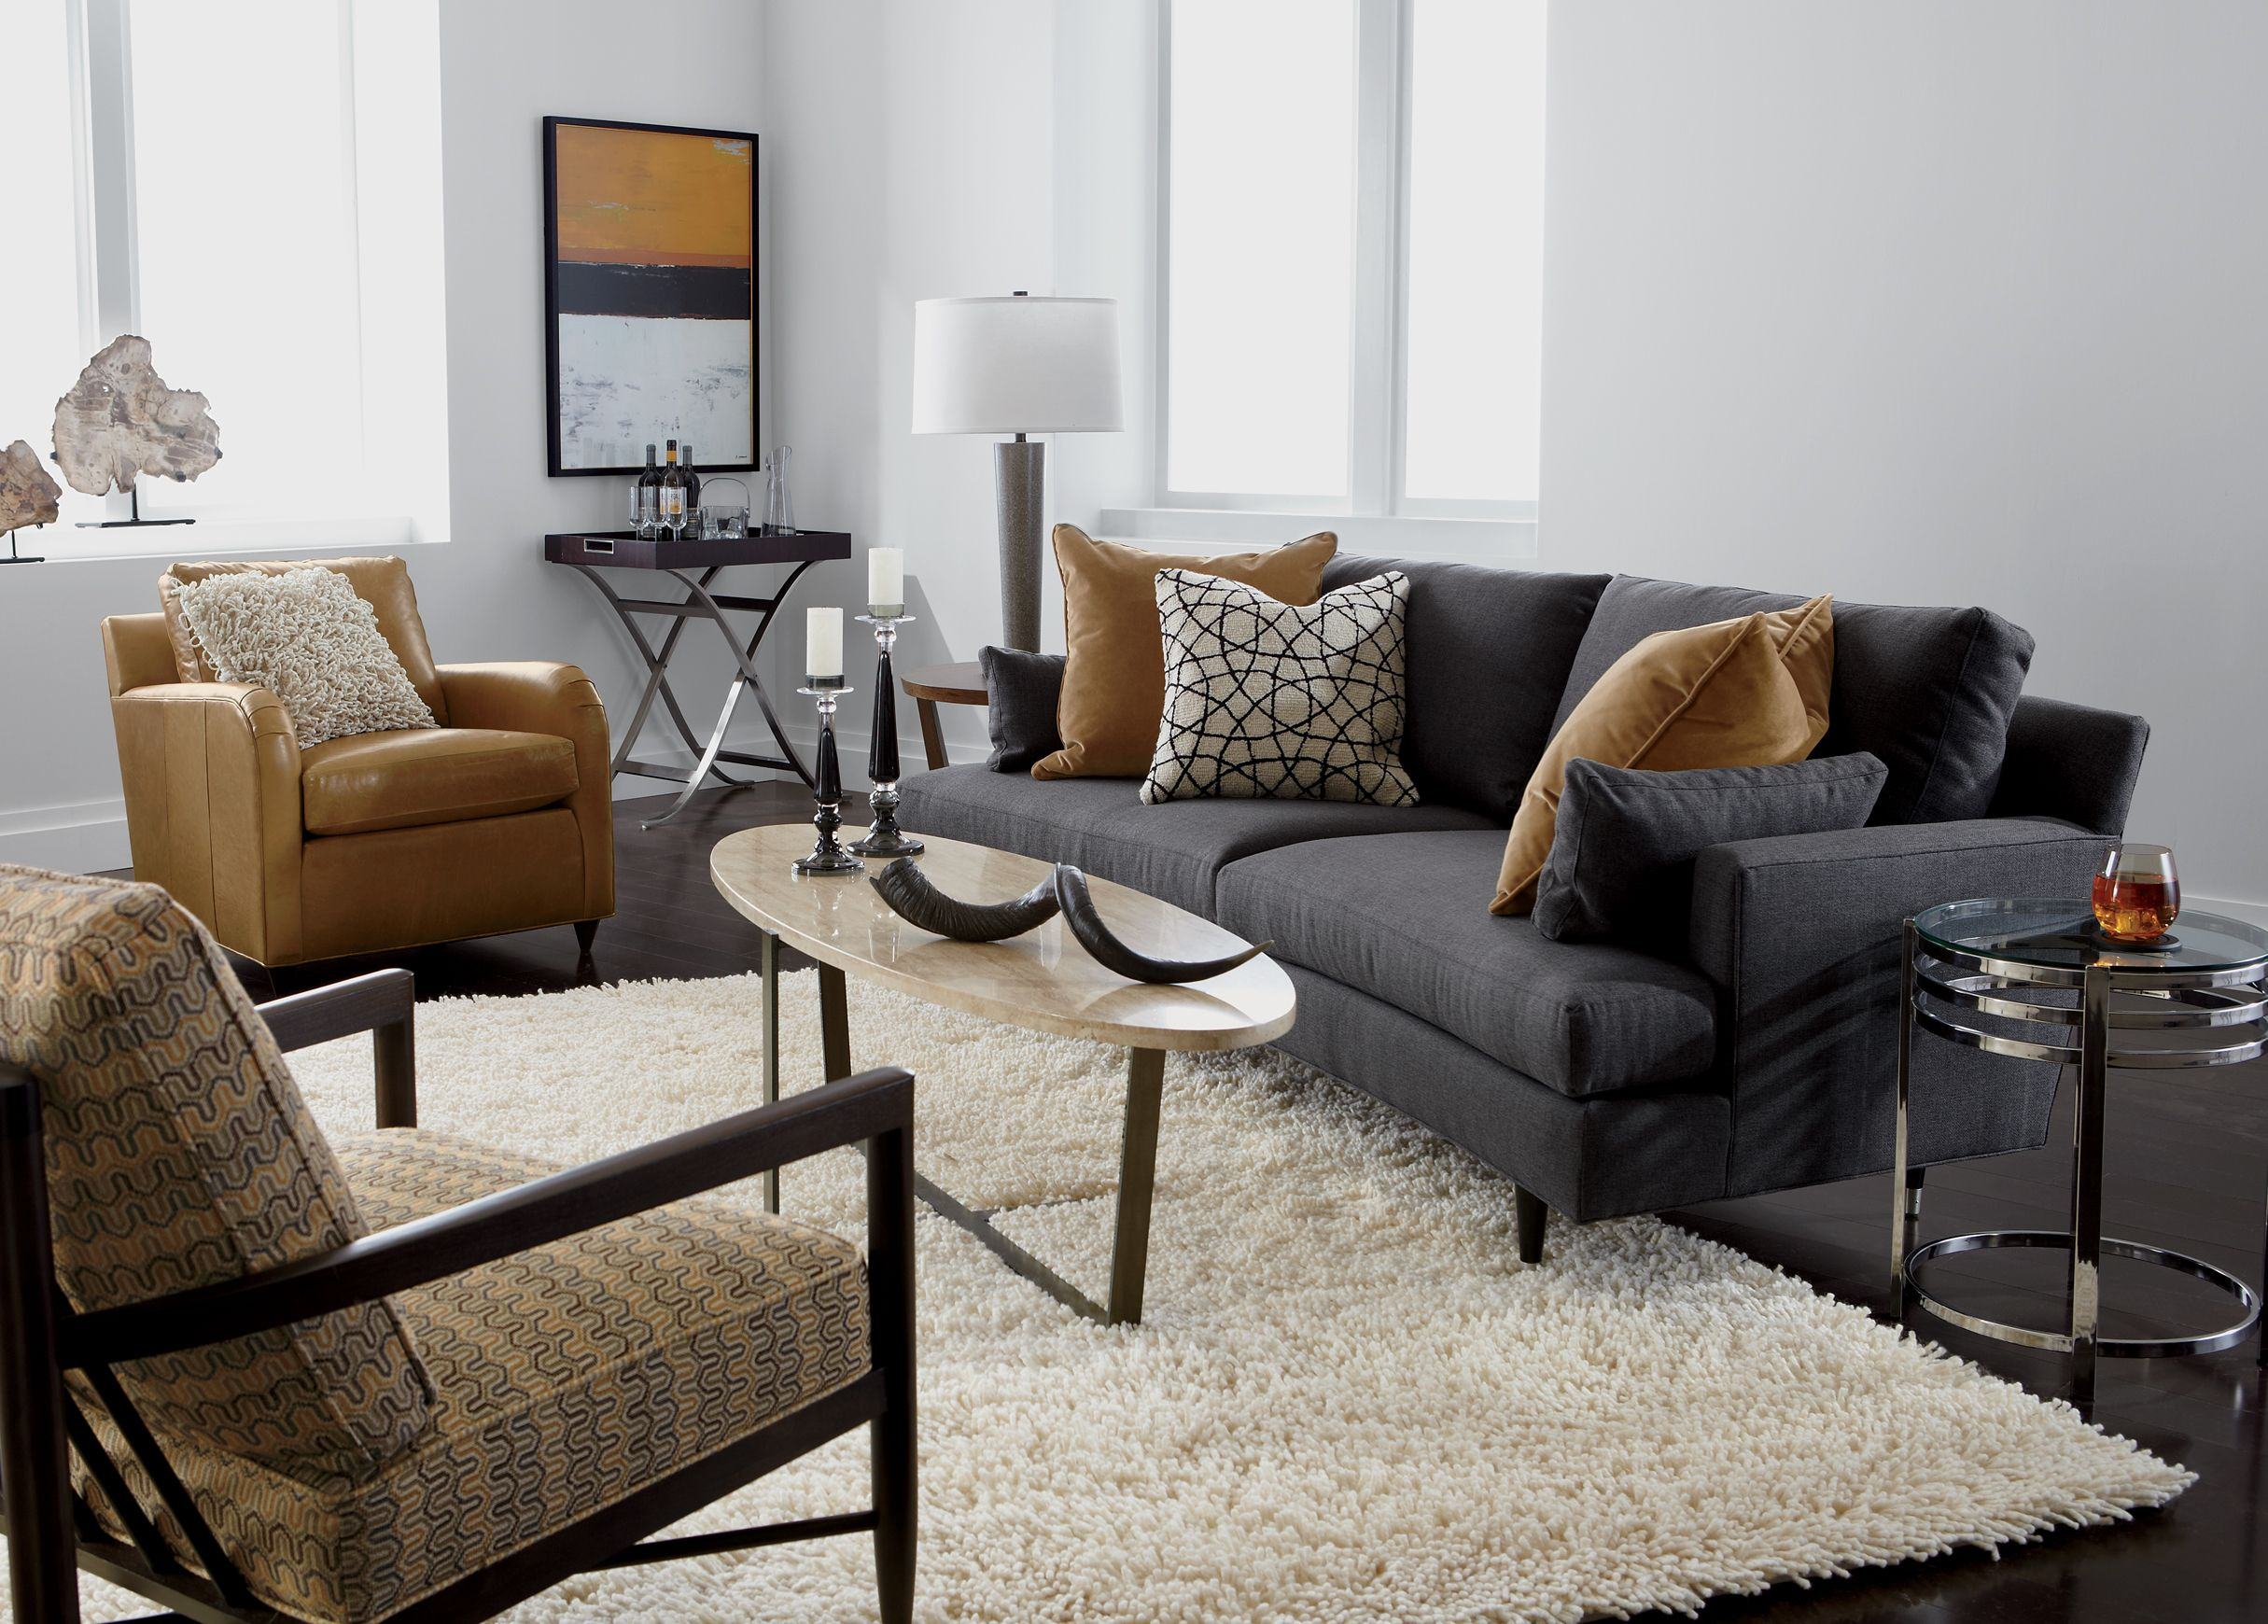 Apollo Living Room Ethan Allen Curved Sofa On Sale 11 14 For